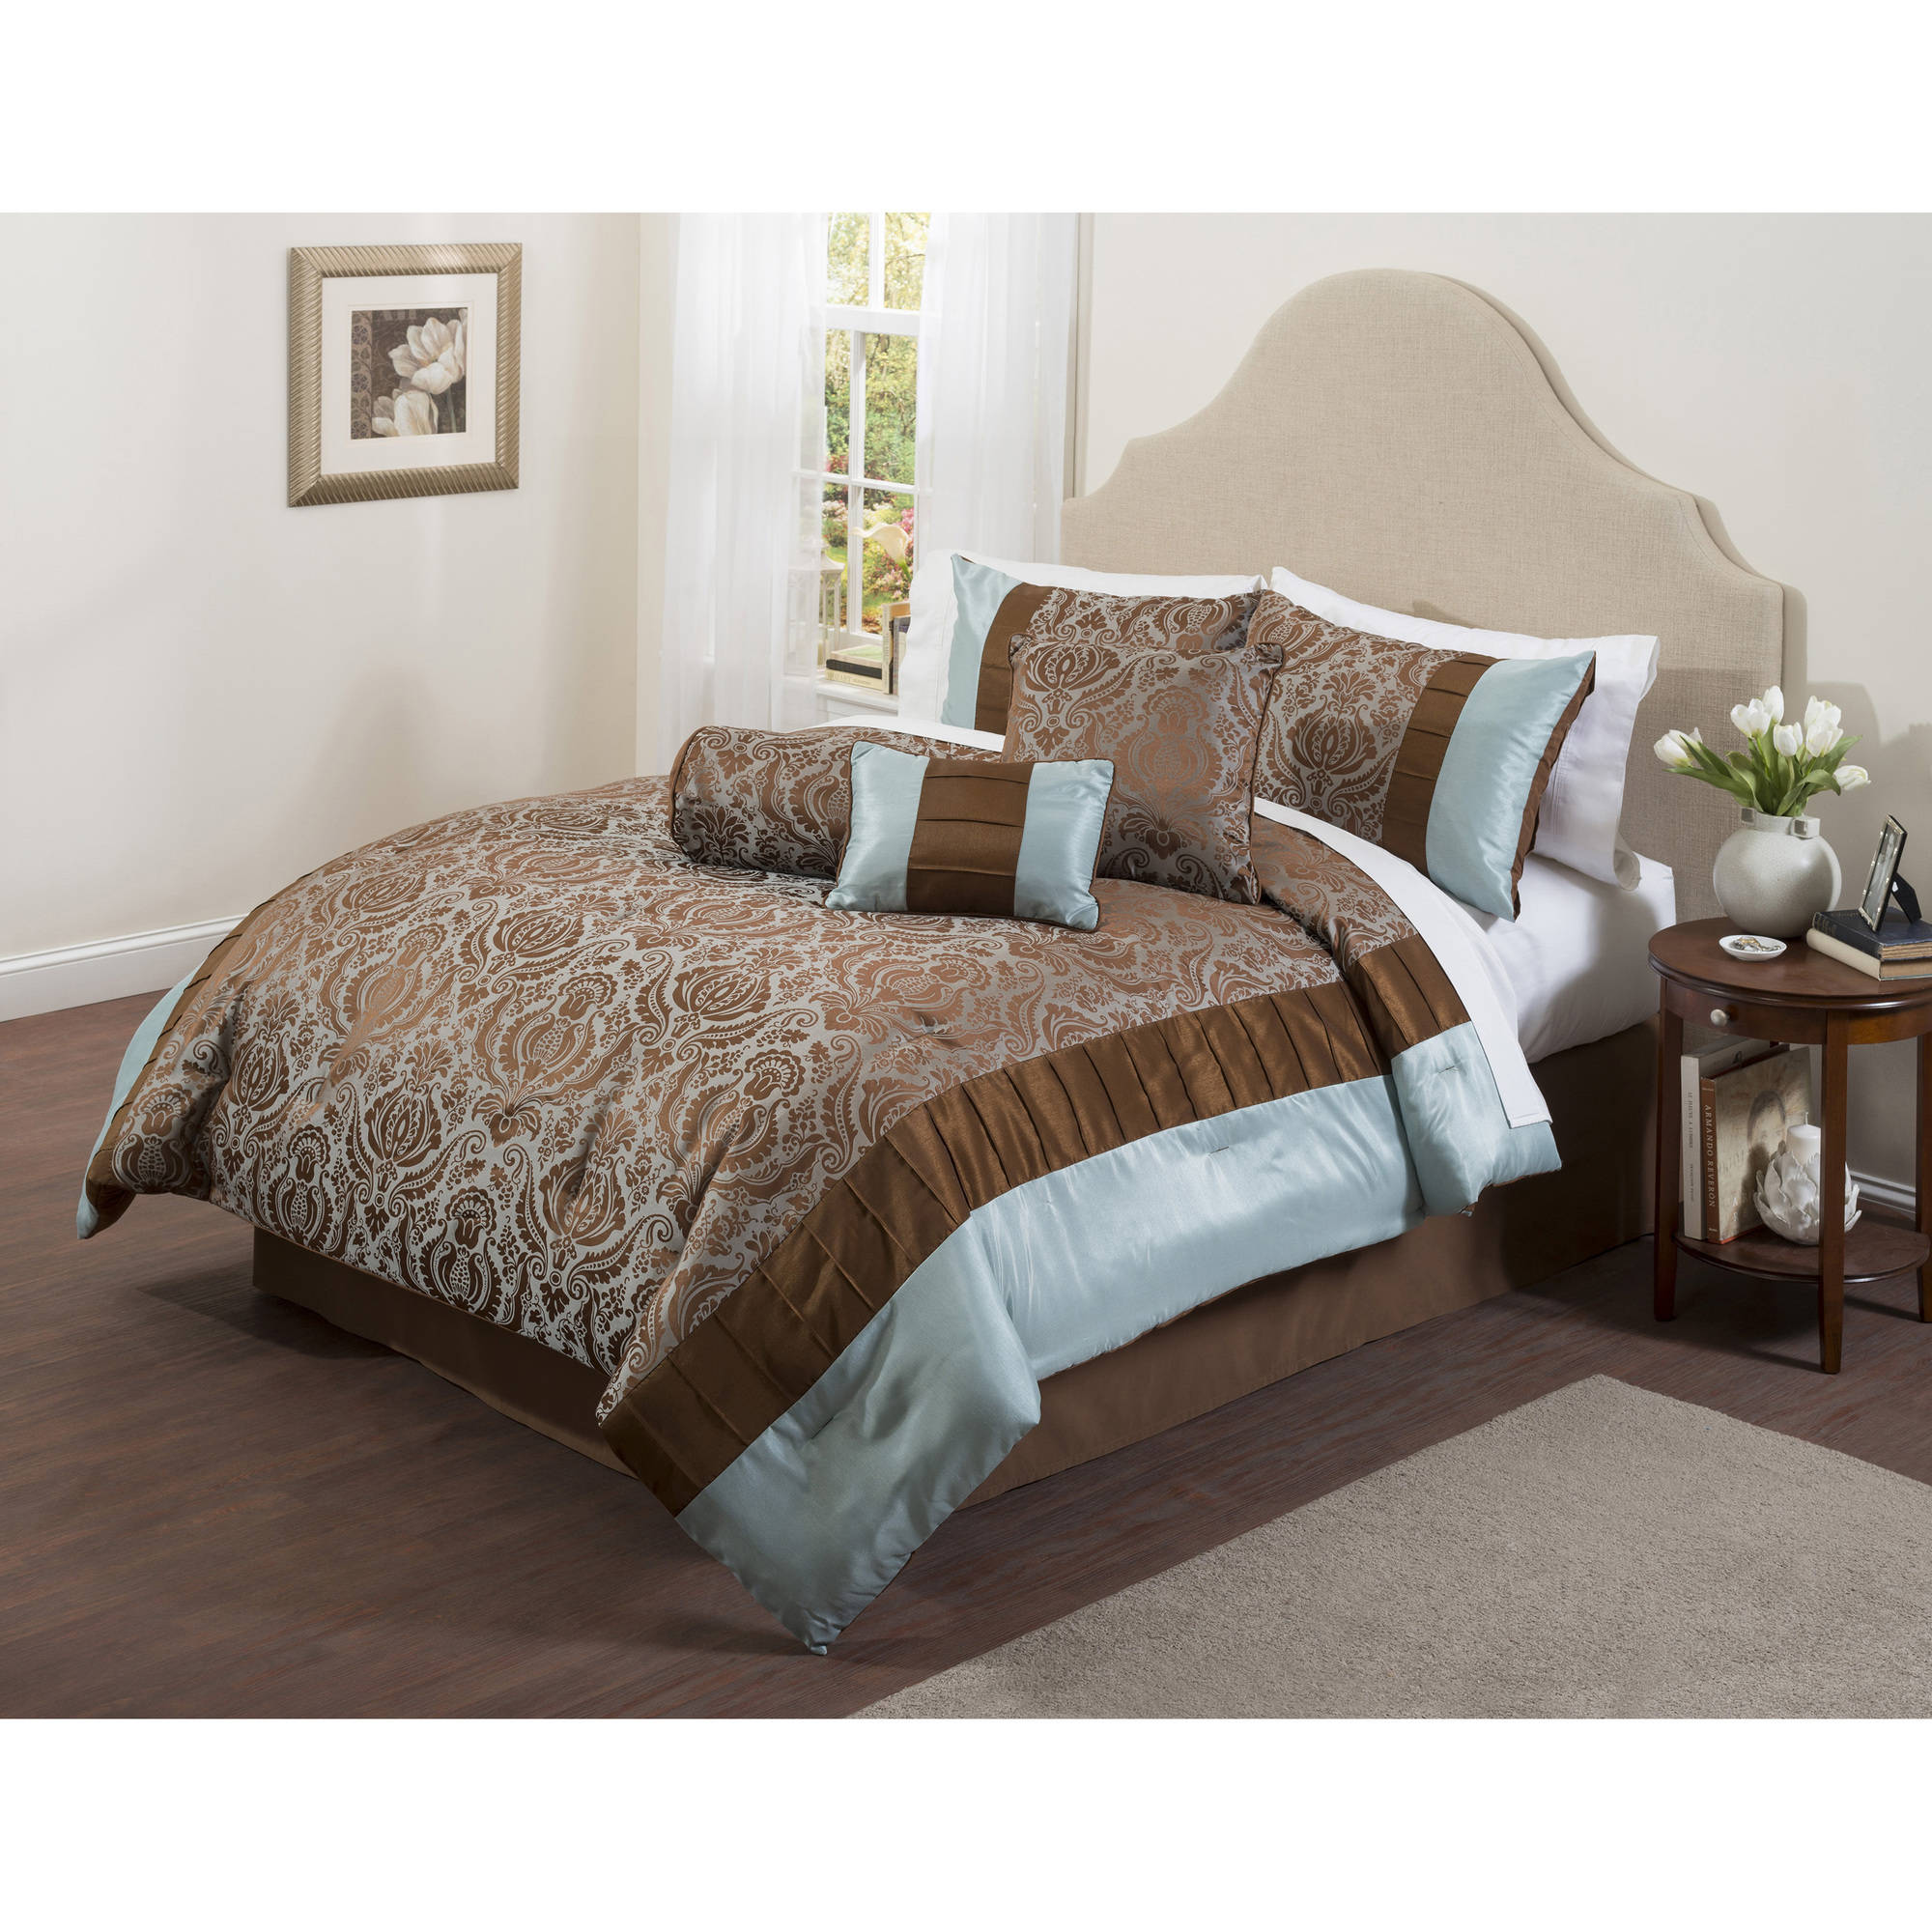 Casa Boylston 7-Piece Bedding Comforter Set